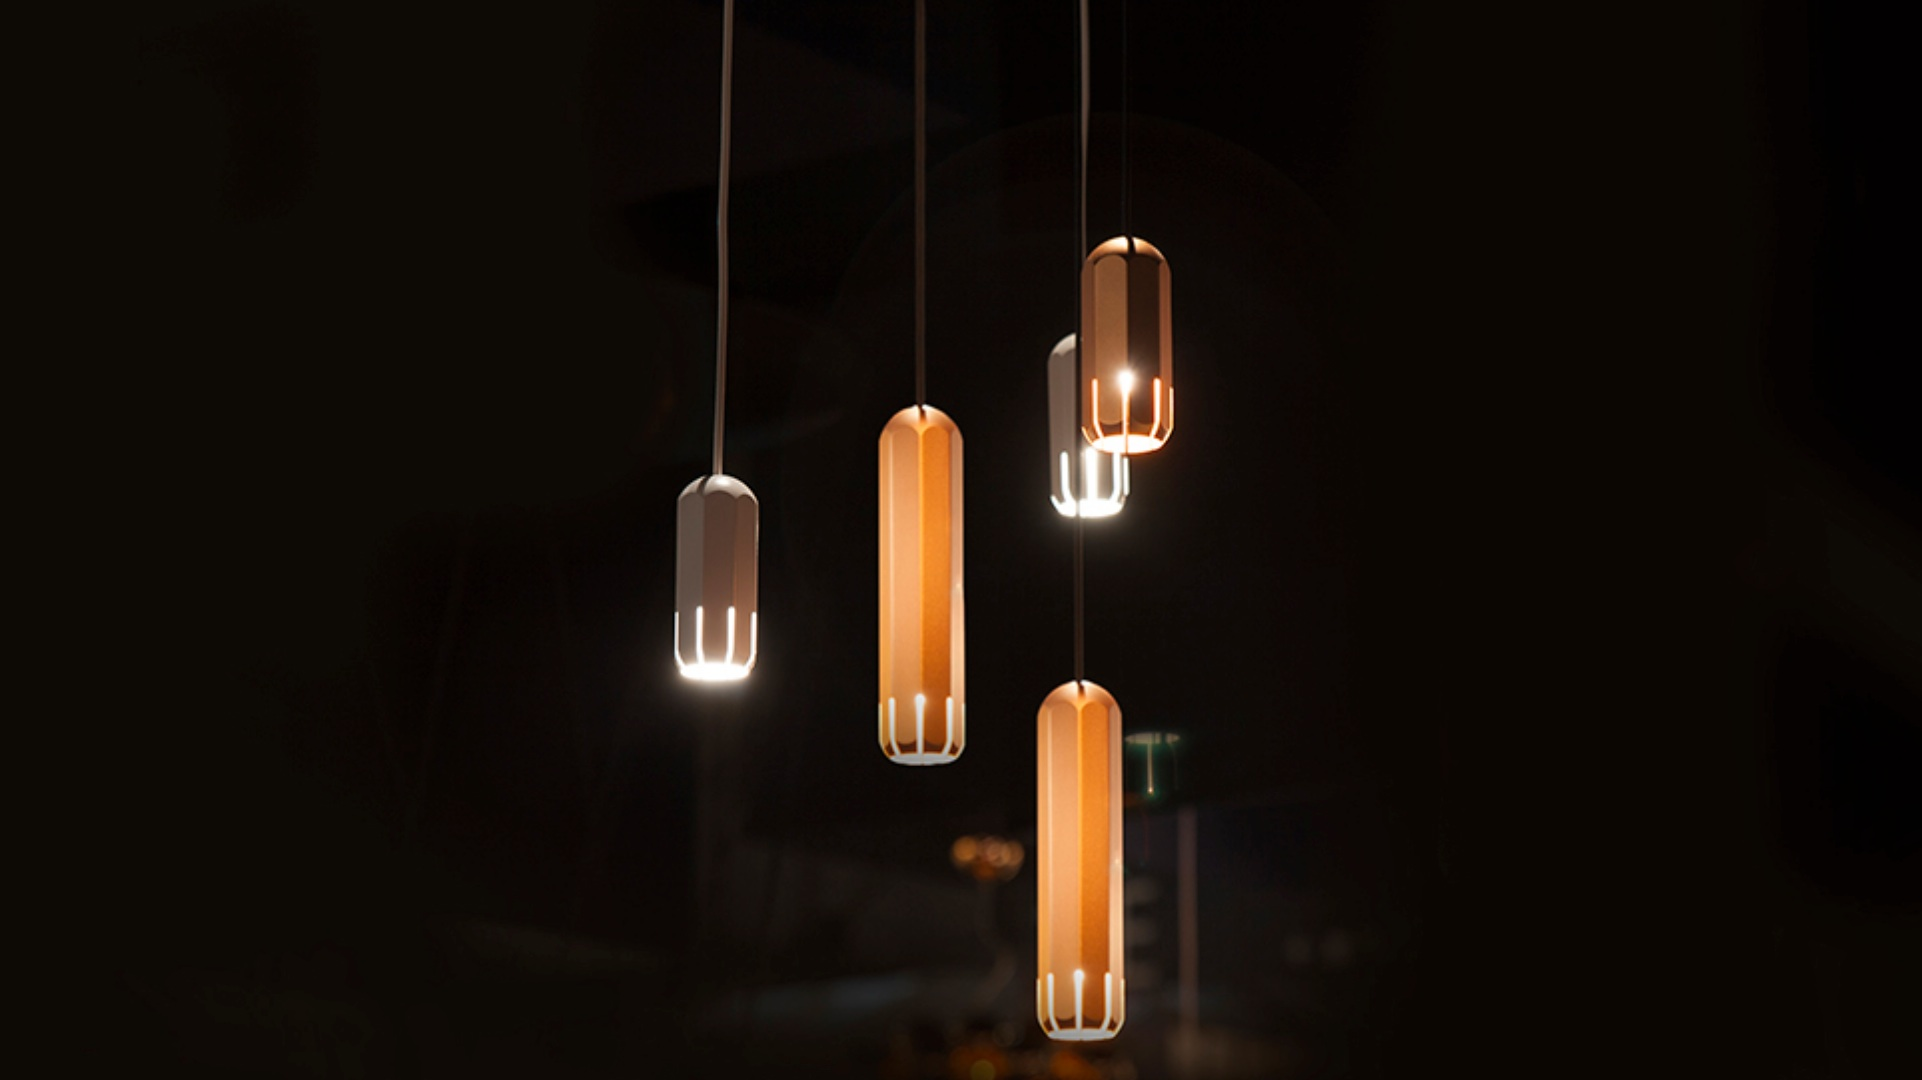 Brixton Spot lights are inspired by Victorian architecture, the light emanates in unexpected ways and creates interesting looks